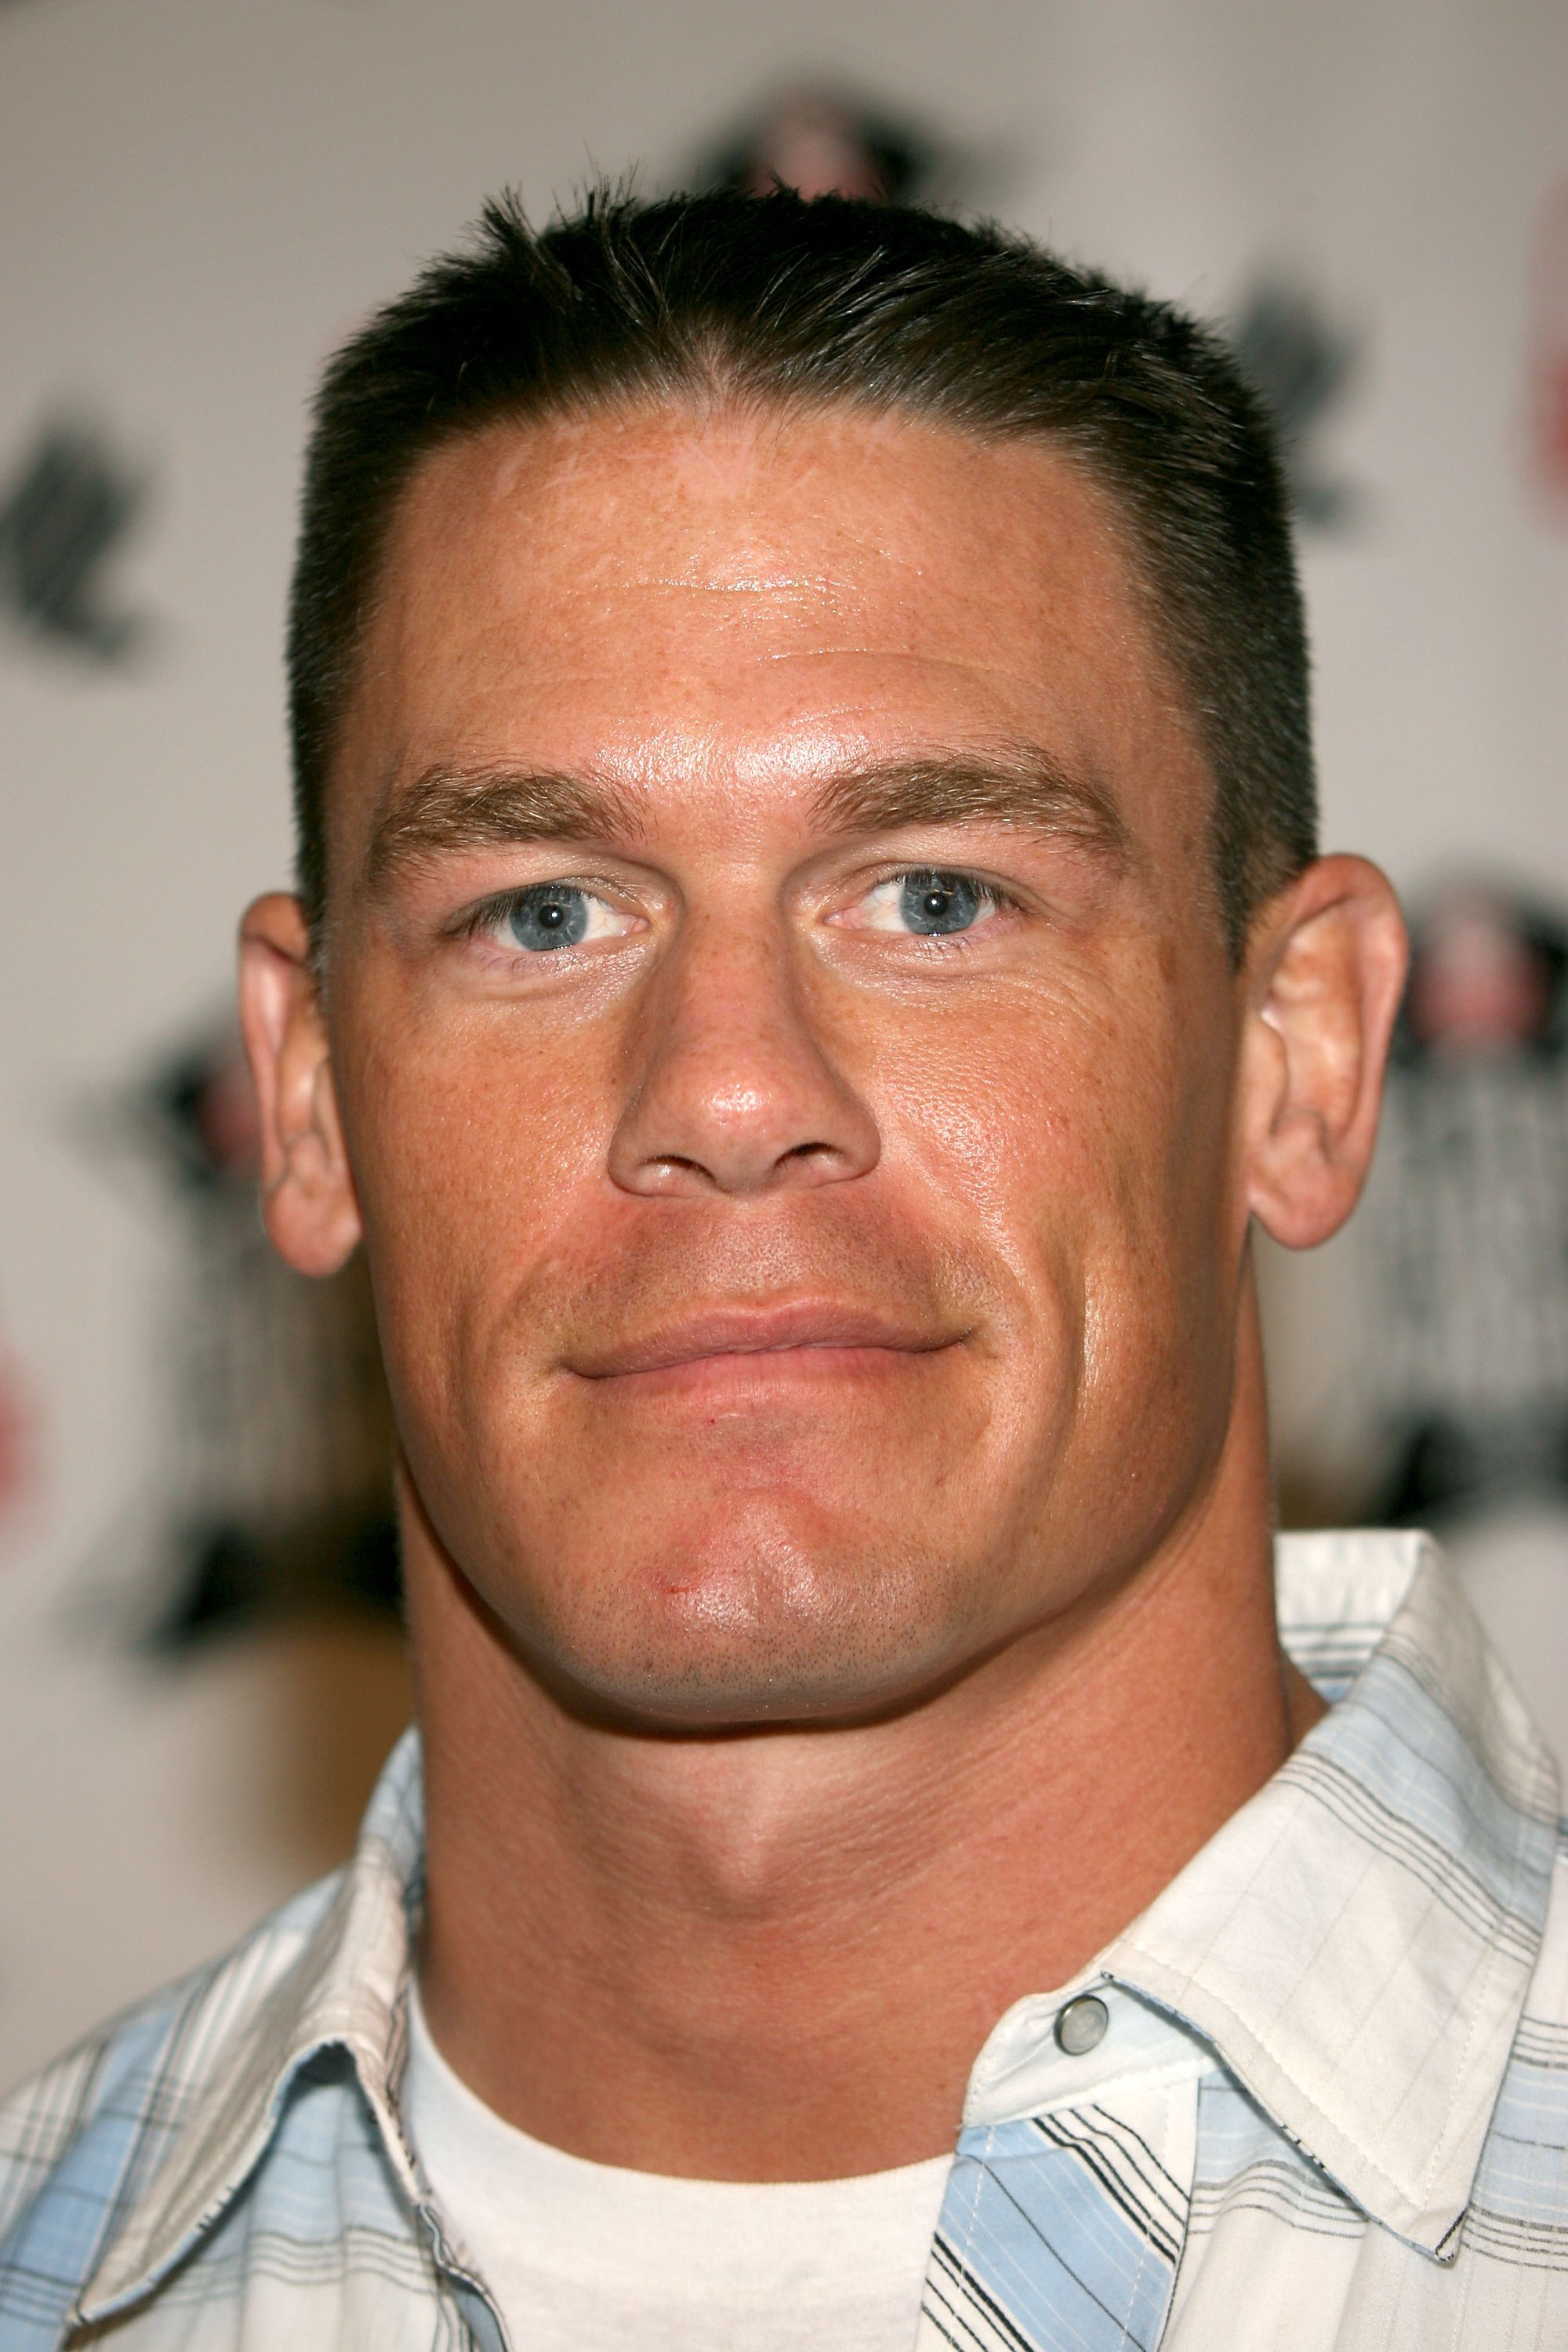 Expect Cena to walk out of Atlanta as WWE Champion